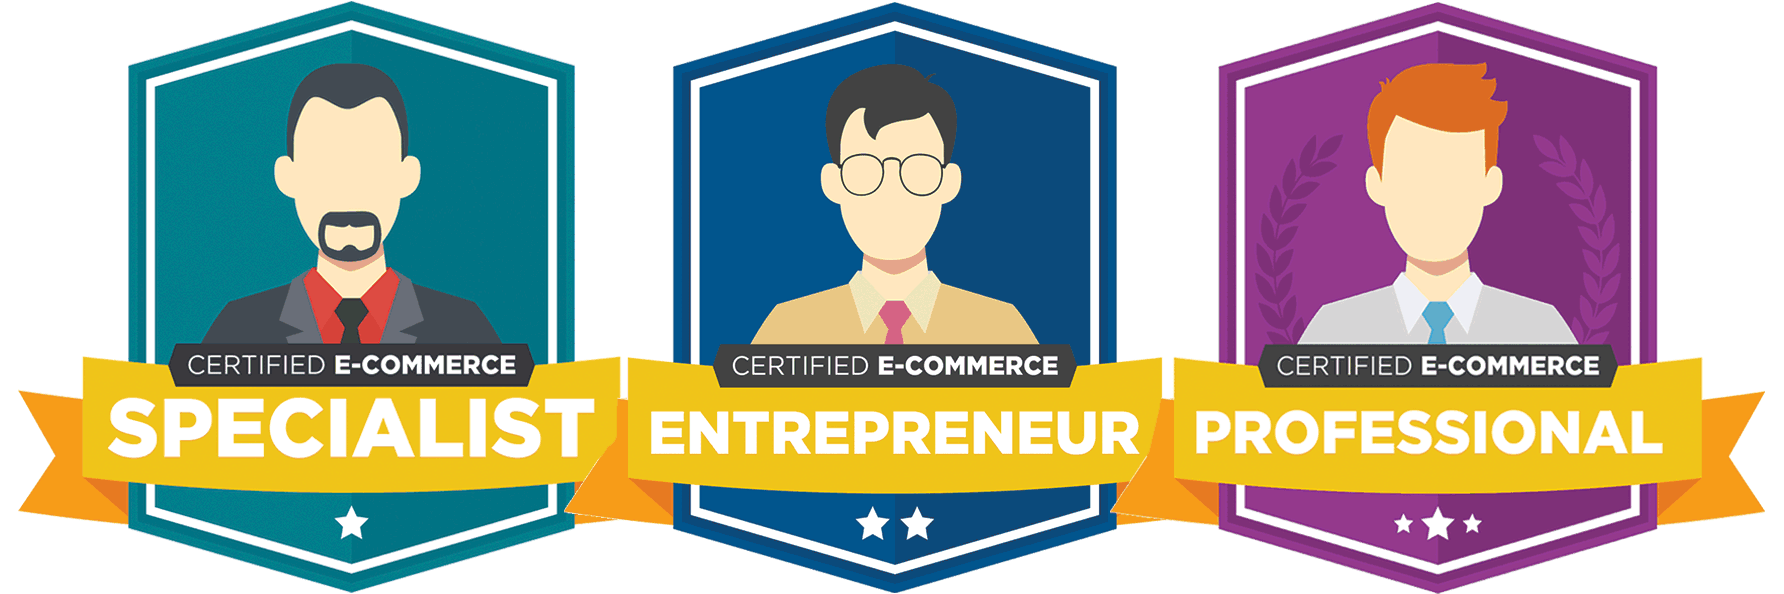 Certified E-Commerce Specialist, Entrepreneur, Professional Program by Janette Toral